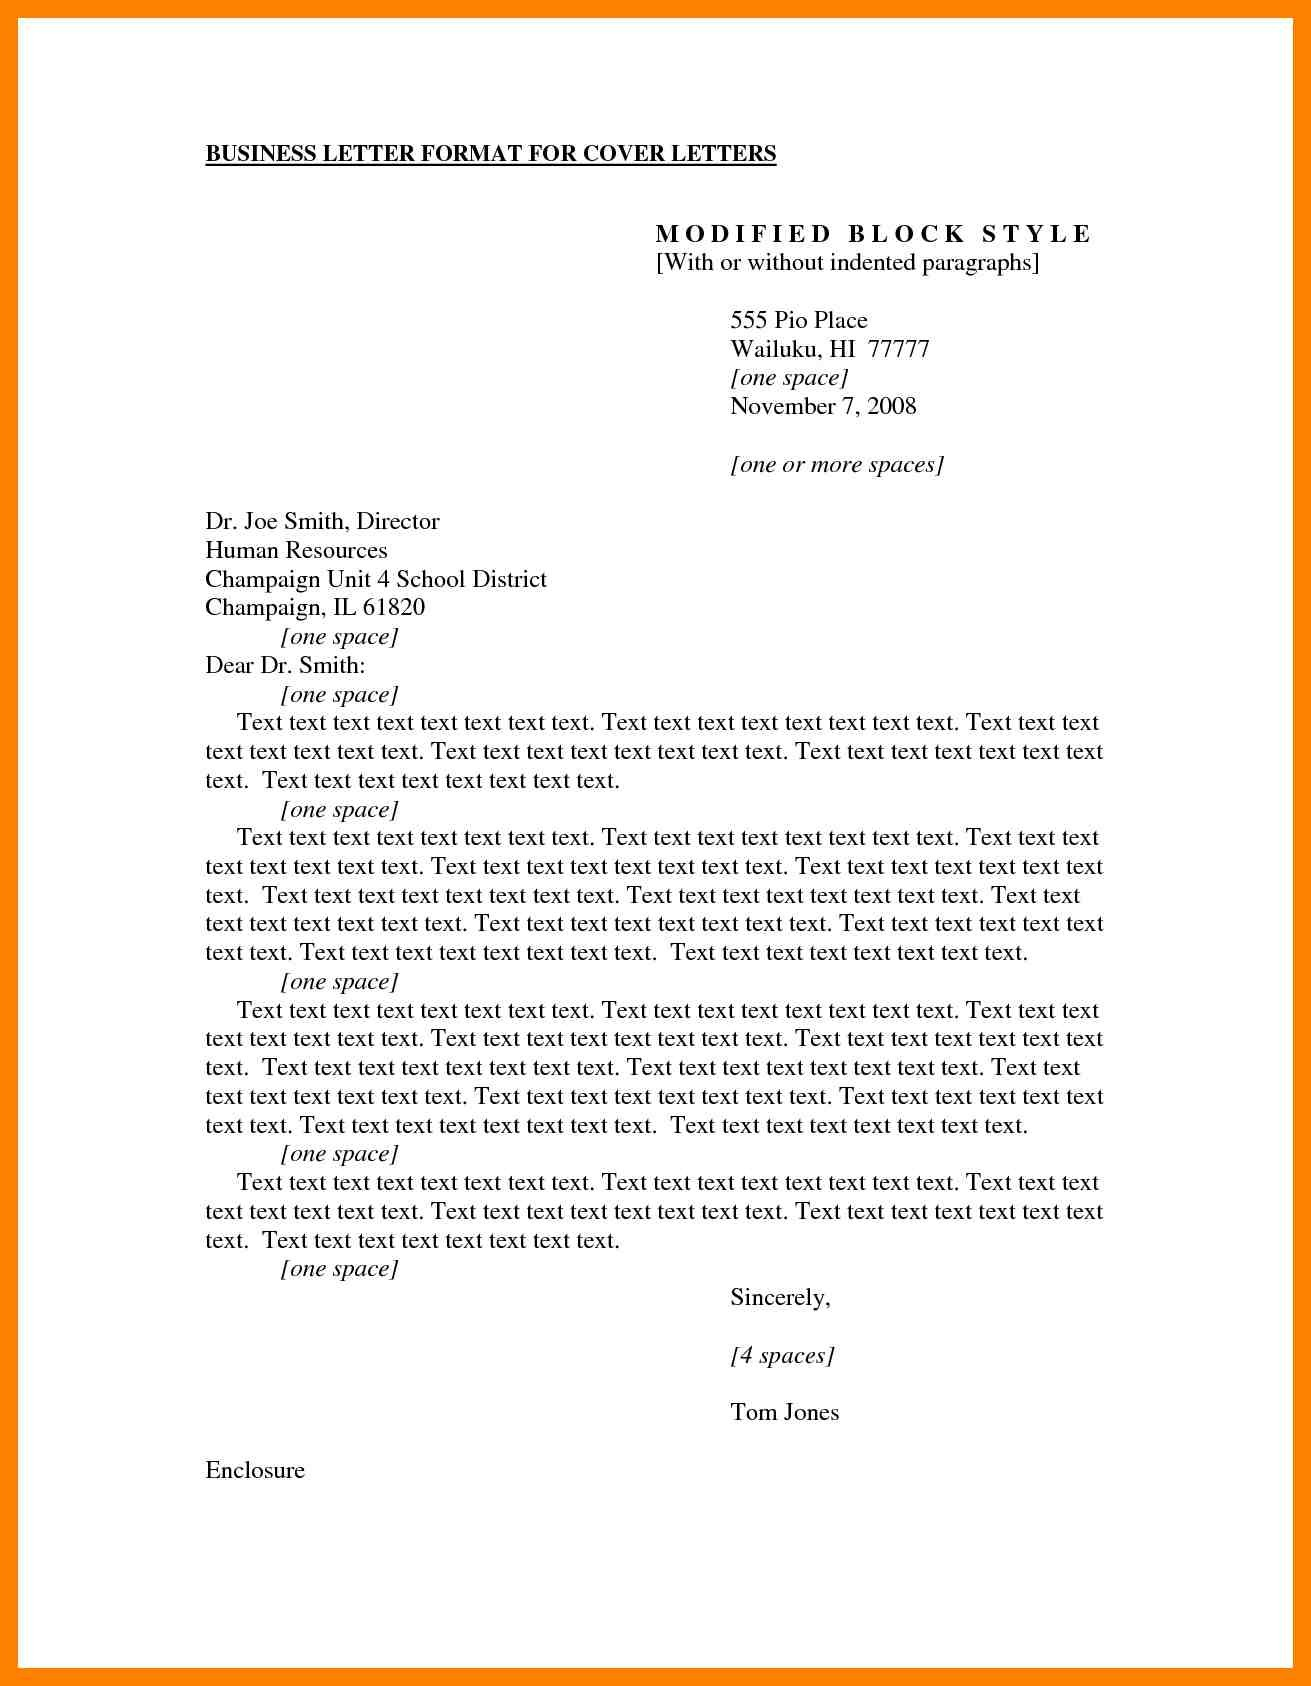 copy of a business letter Boat.jeremyeaton.co